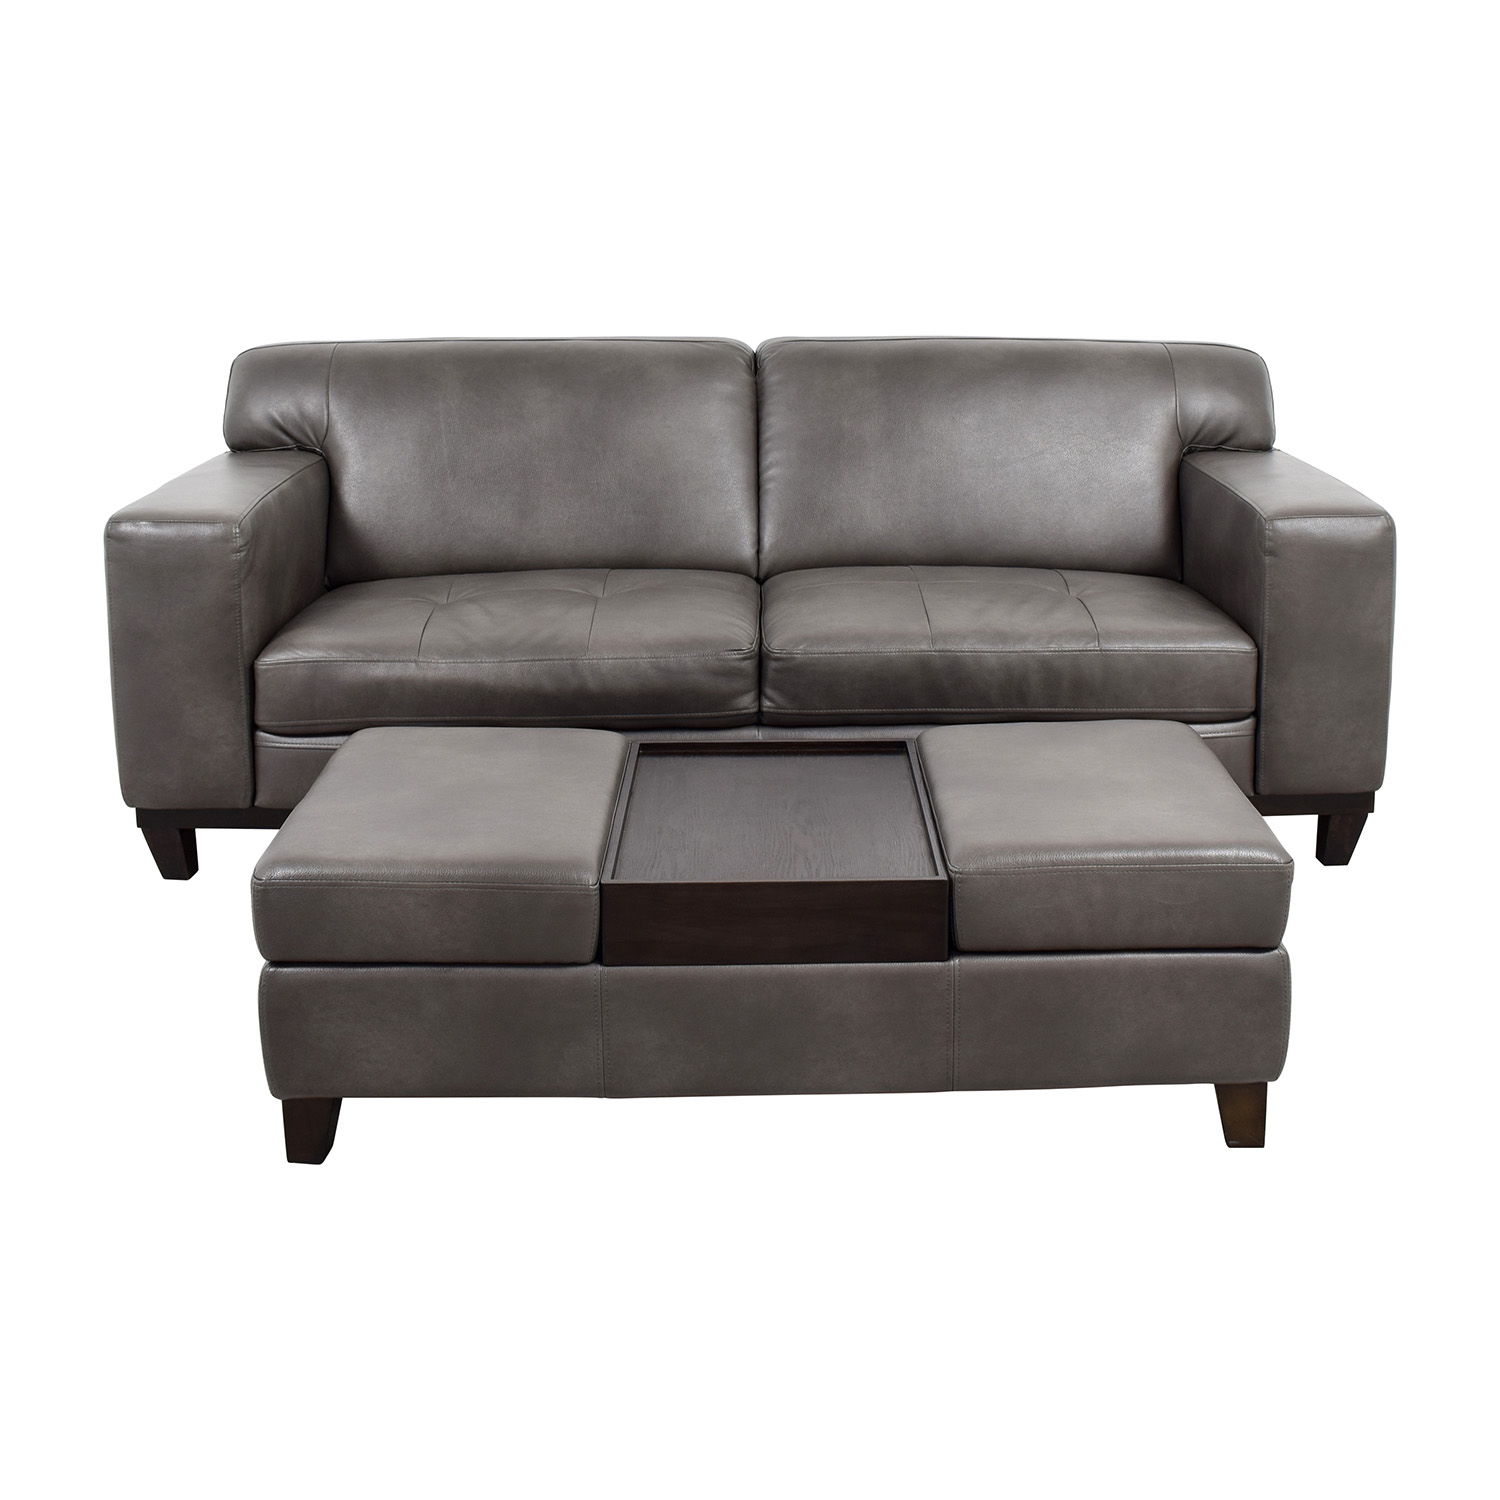 68% OFF - Raymour & Flanigan Raymour & Flanigan Grey Leather Couch ...